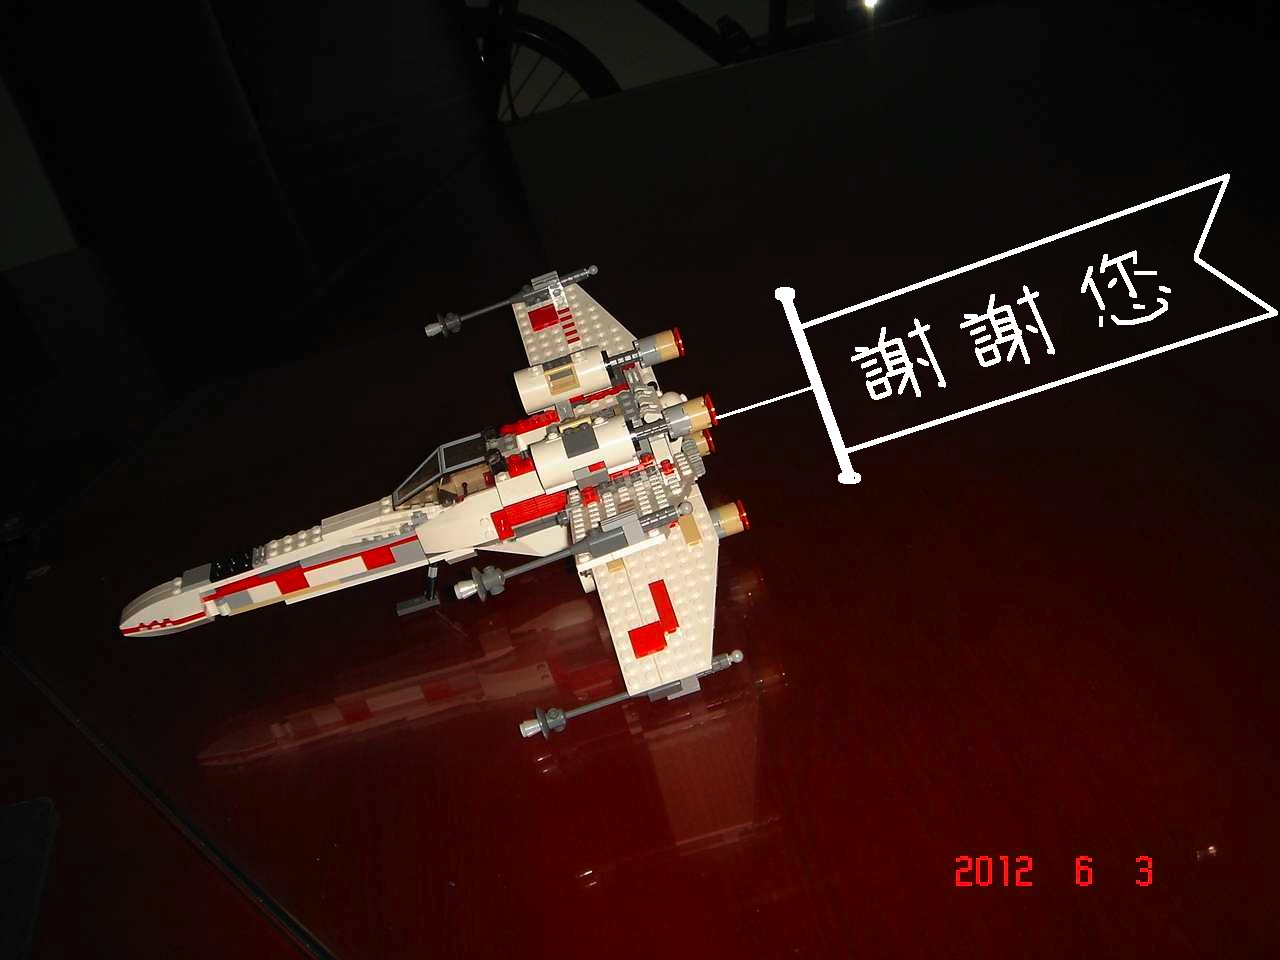 x_wing_ucc-office_0603003.jpg